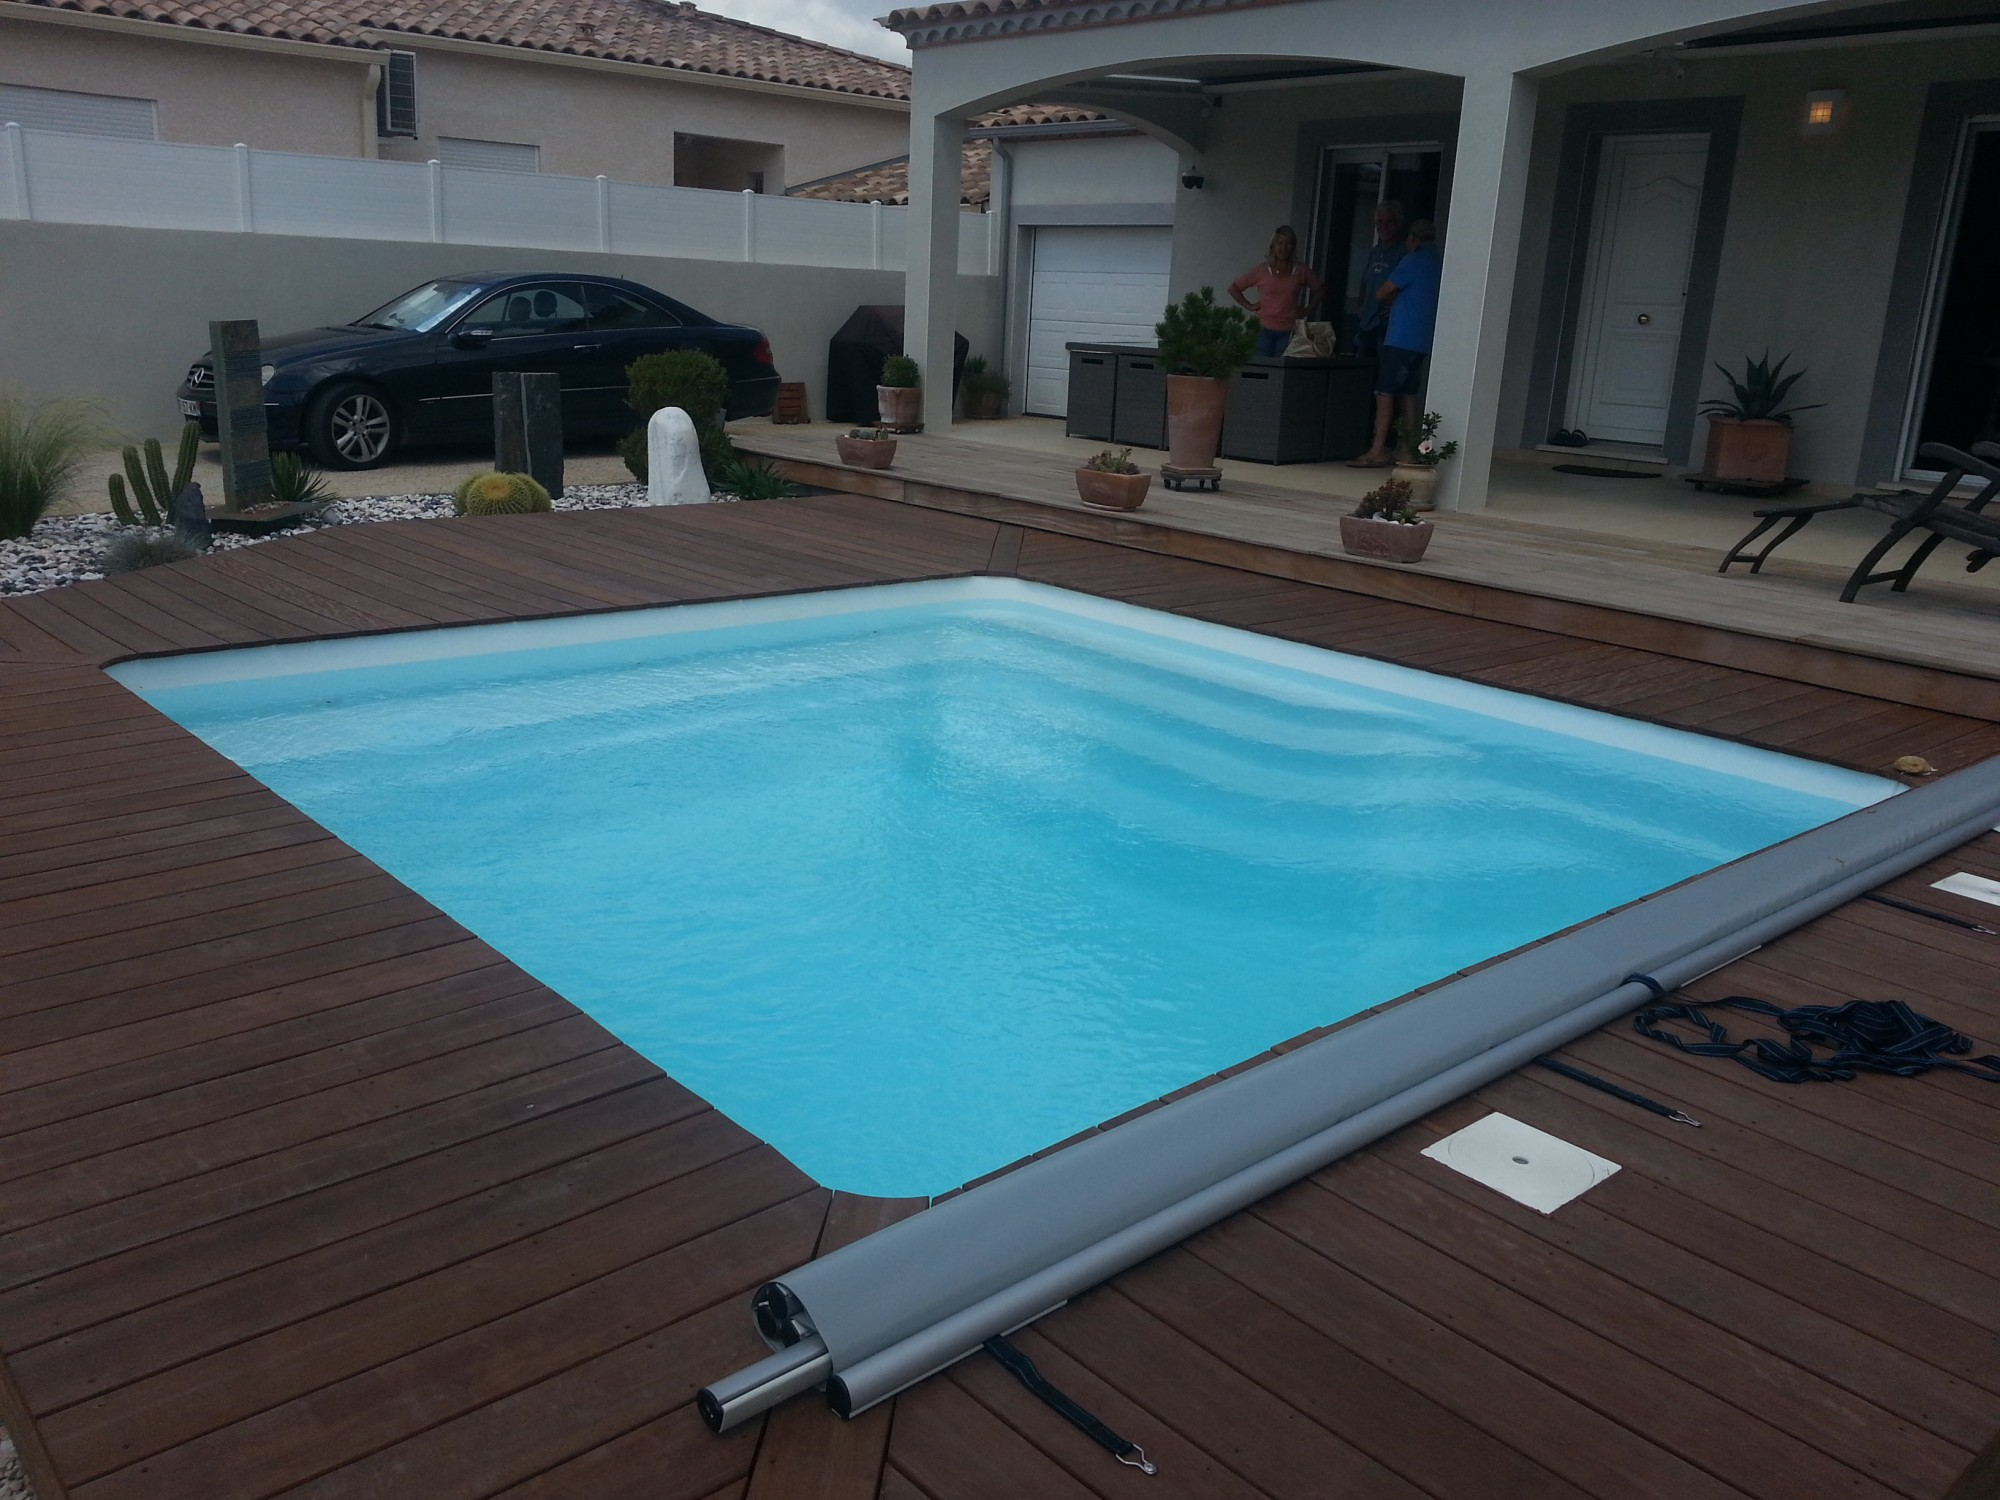 Am nager sa piscine coque polyester piscine polyester for Piscine coque carre